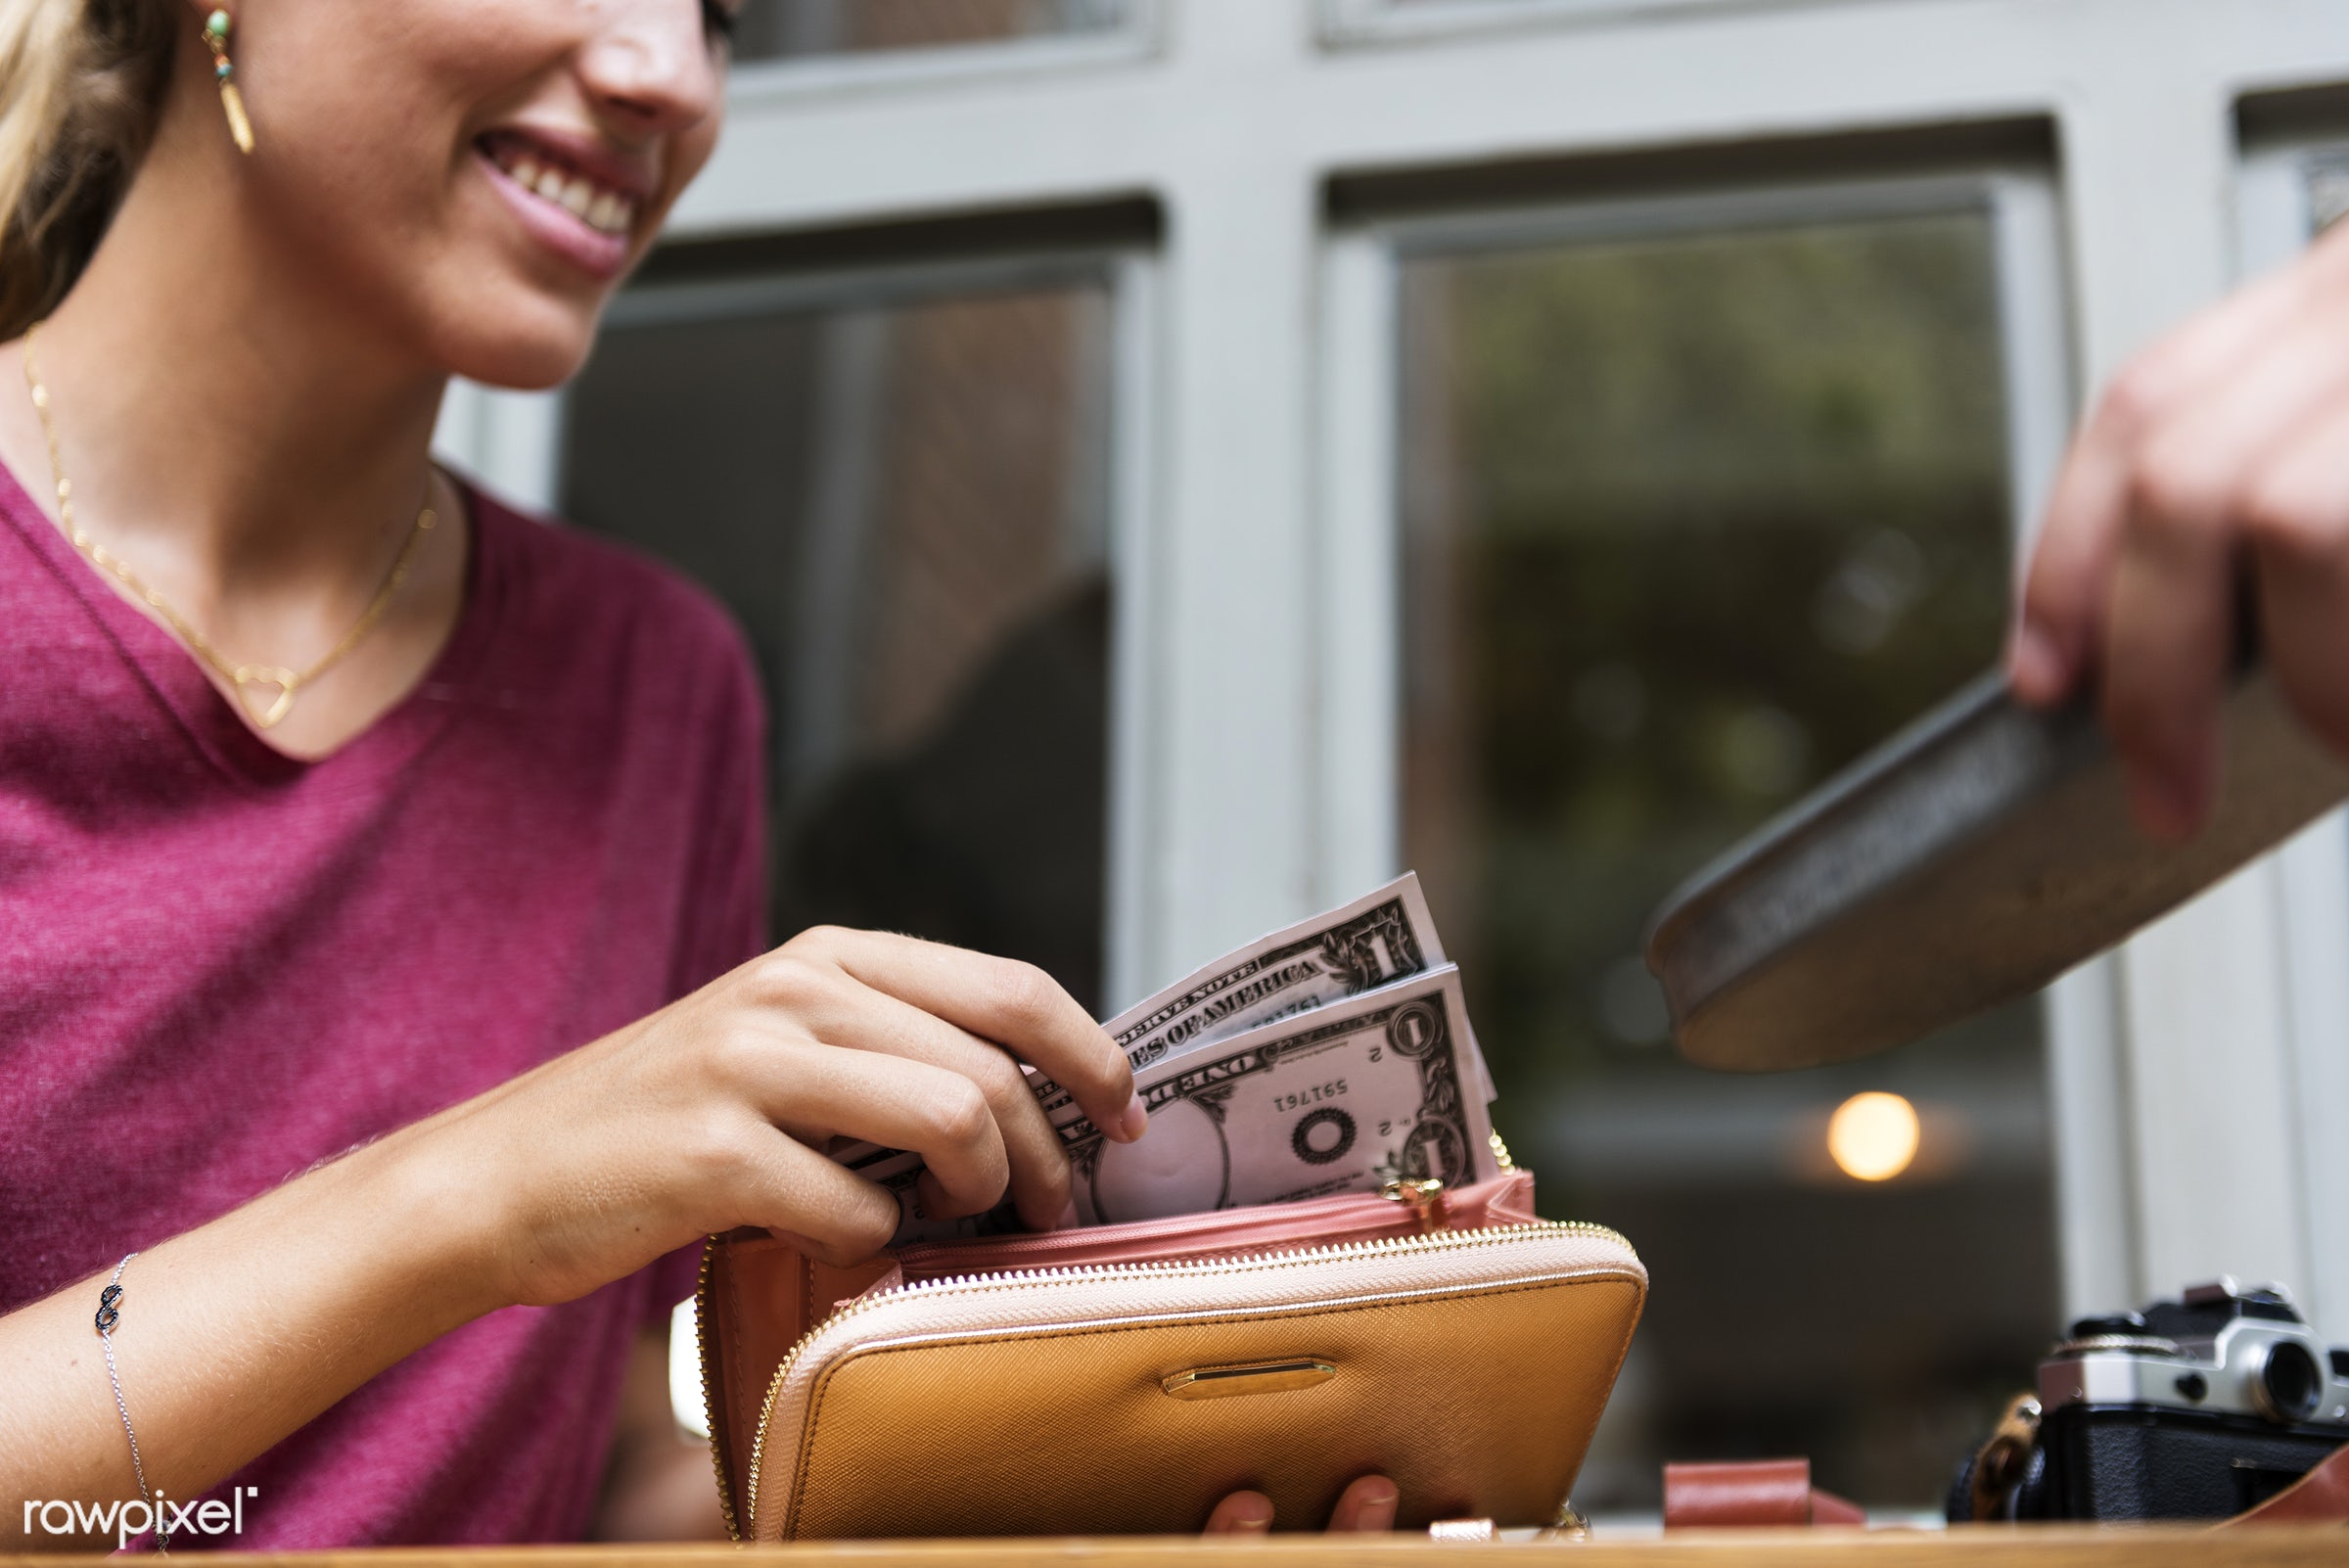 purse, bill, restaurant, date, wallet, girl, woman, money, glass, paying, top, check, payment, camera, dollars, aerial,...